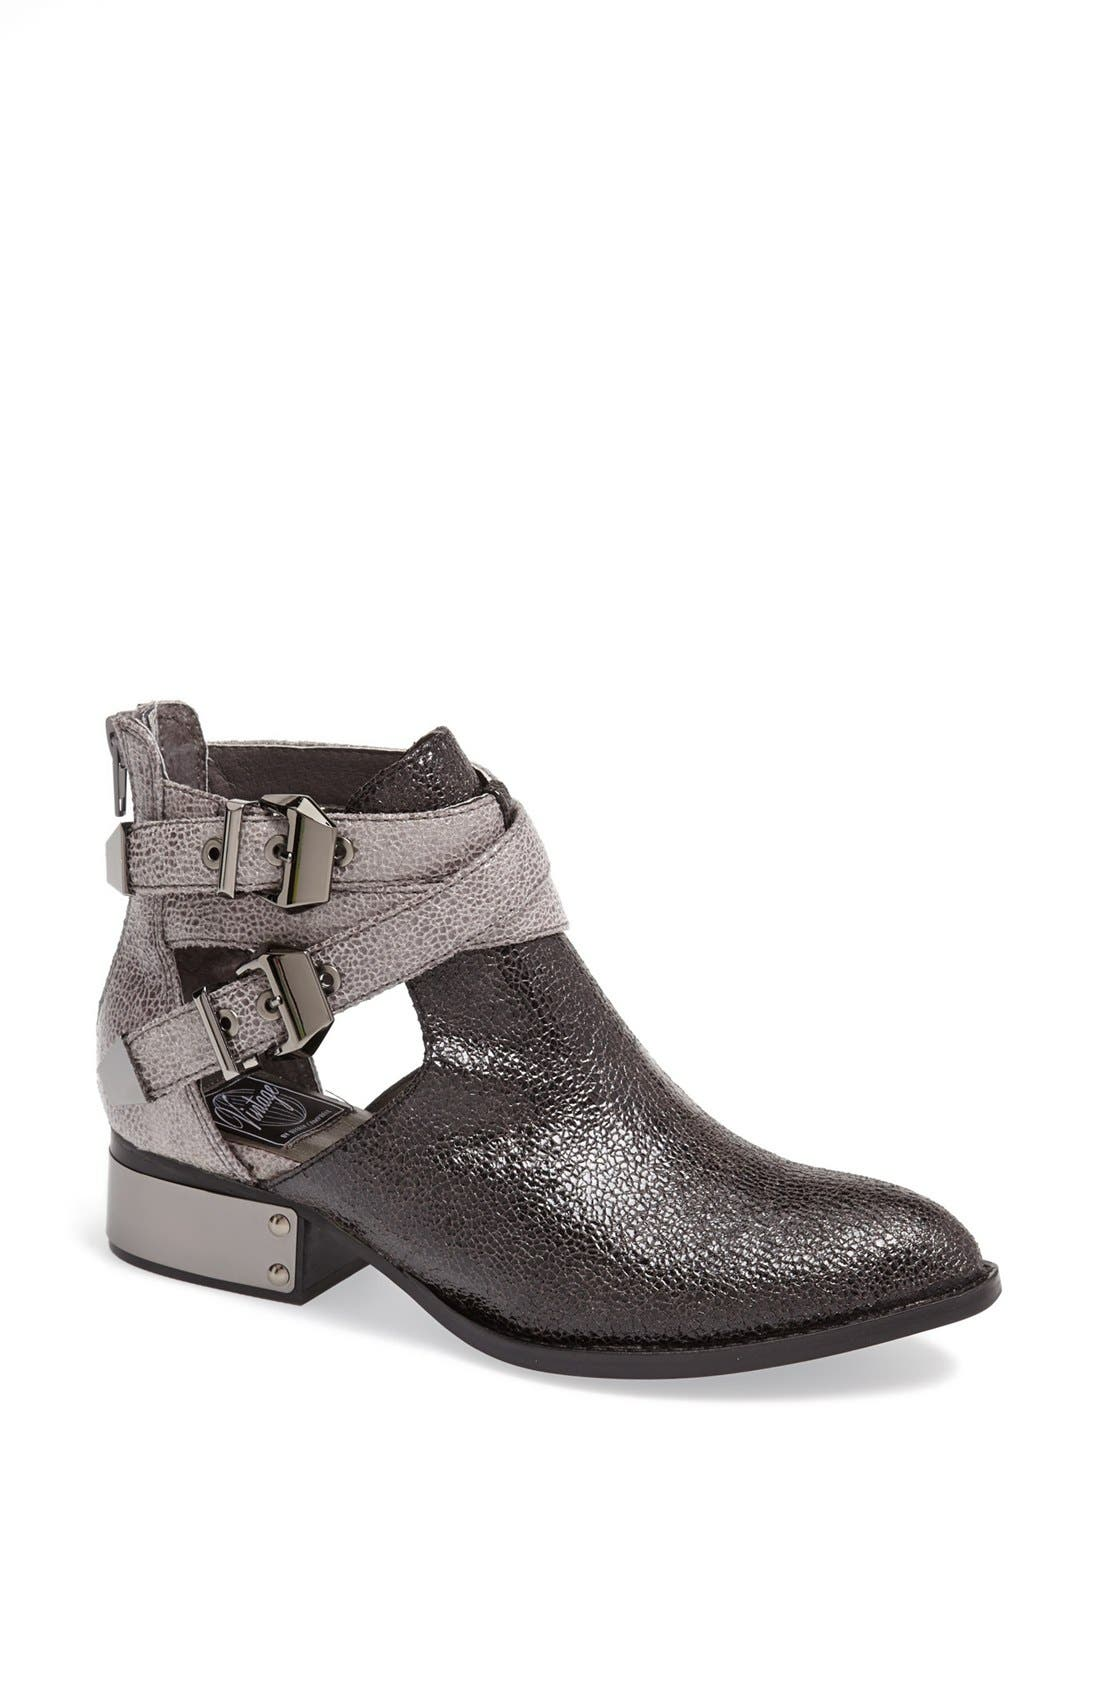 'Everly' Bootie,                             Main thumbnail 1, color,                             Grey Cracked Combo